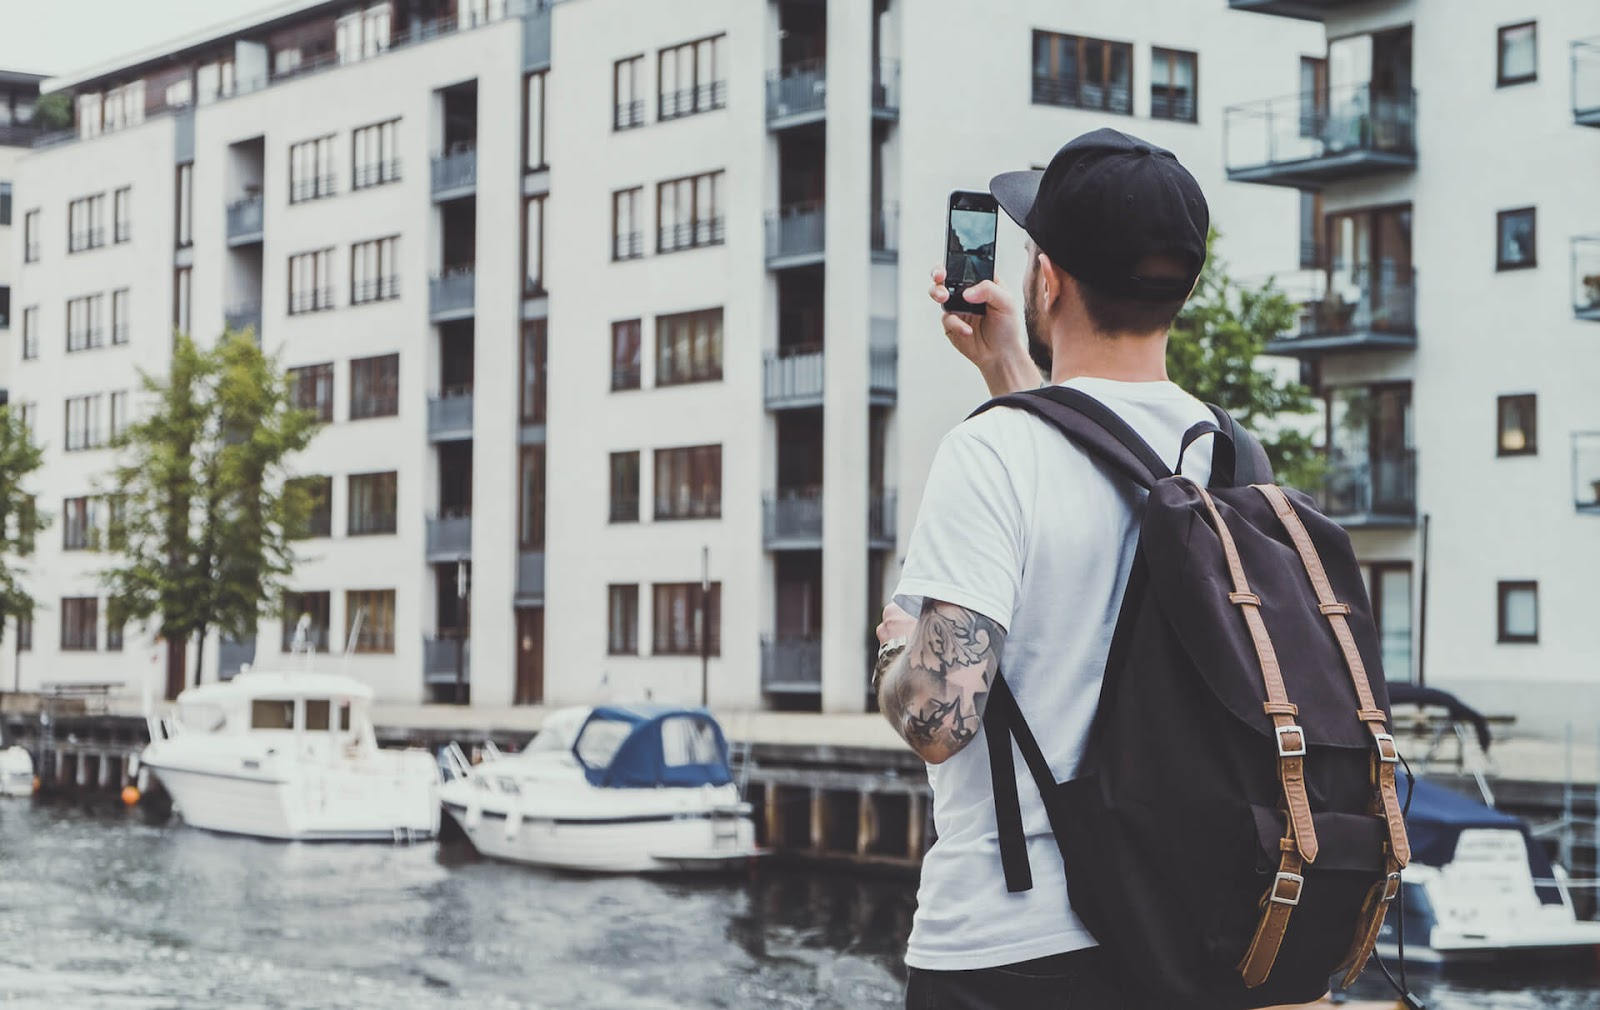 Man holding up phone to take a picture of some buildings